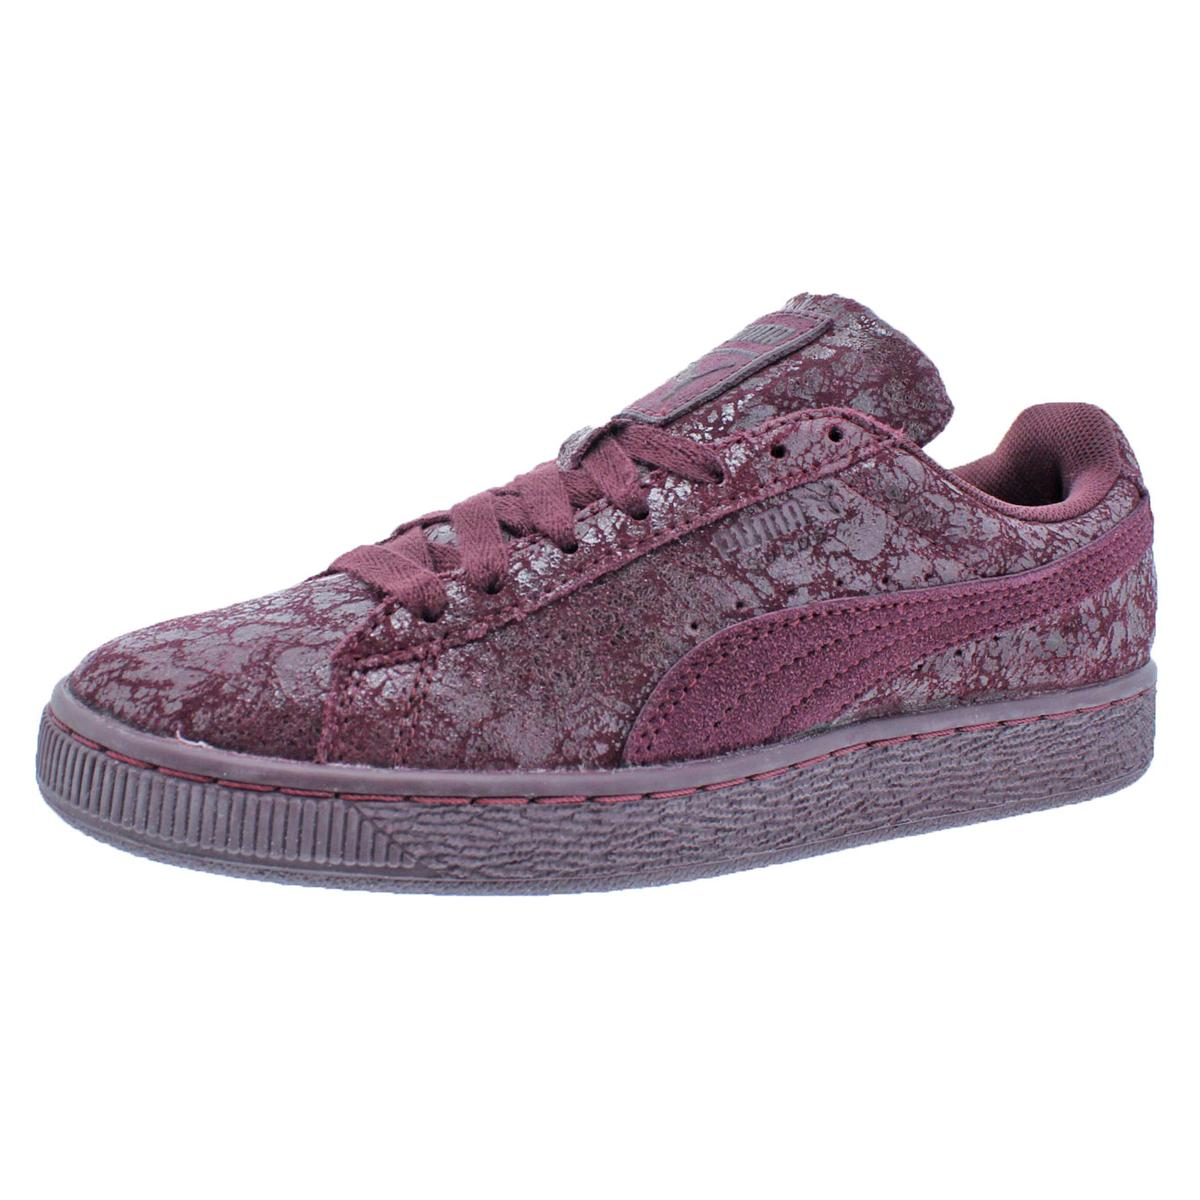 Puma Damenschuhe Suede Remaster Trainer Low Top Fashion Sneakers Schuhes BHFO 0964